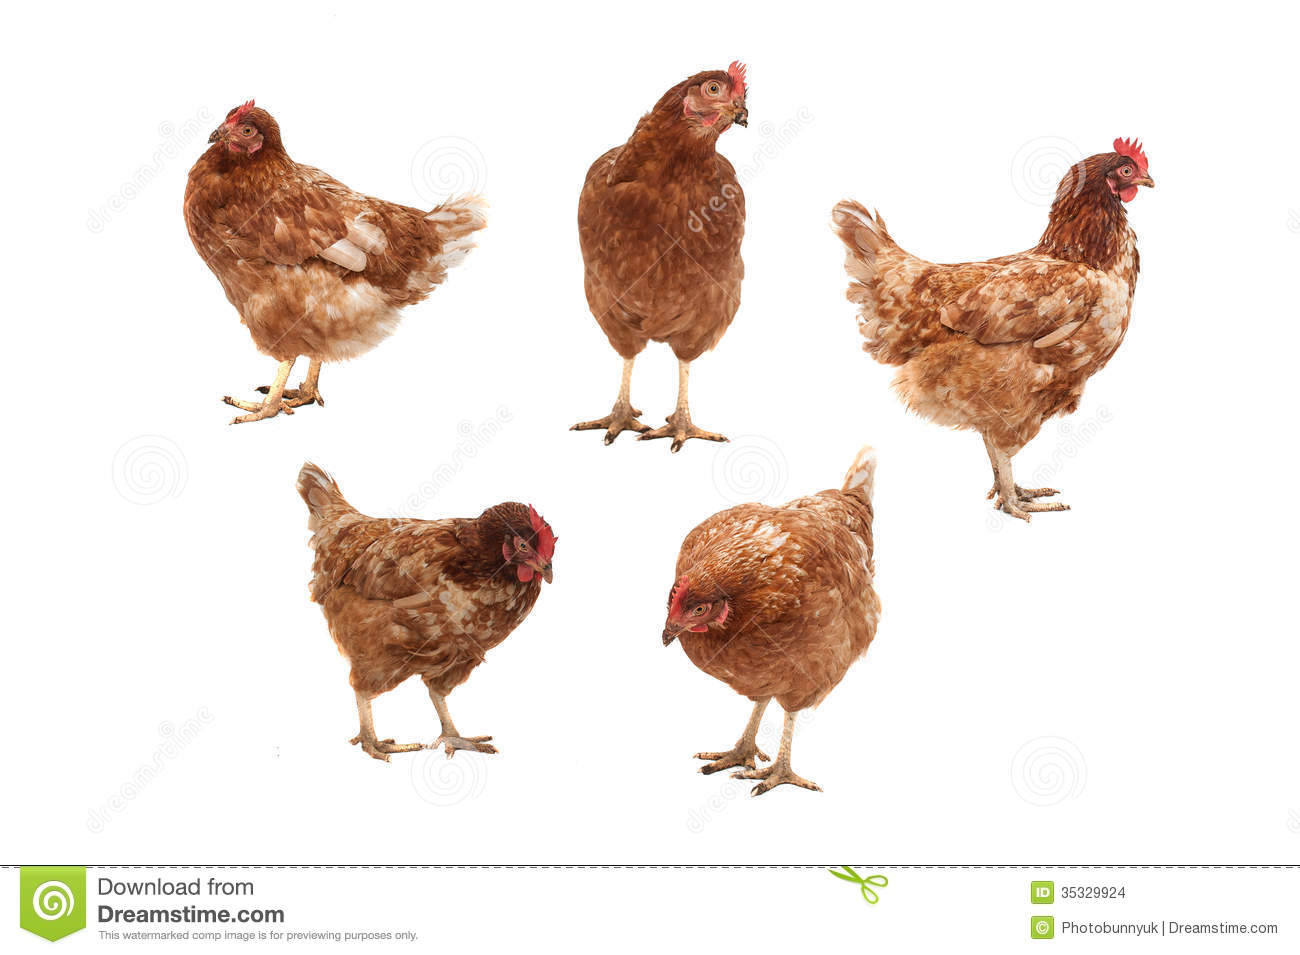 Chickens On A White Background. Stock Images - Image: 35329924